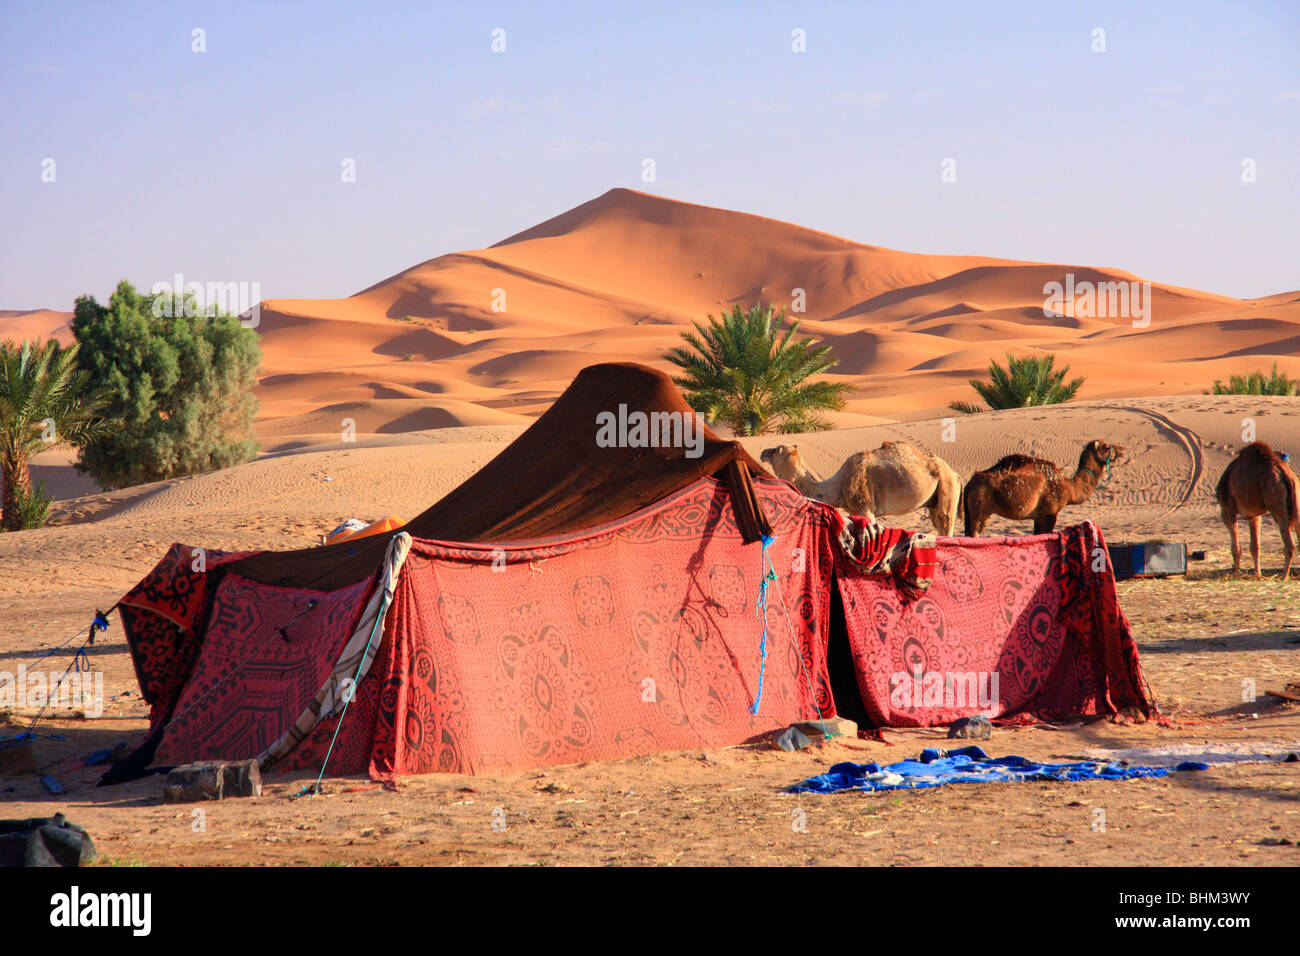 Bedouin tent u0026 camels beneath Erg Chebbi sand dunes in the Sahara Desert near Merzouga Morocco North Africa & Bedouin tent u0026 camels beneath Erg Chebbi sand dunes in the Sahara ...